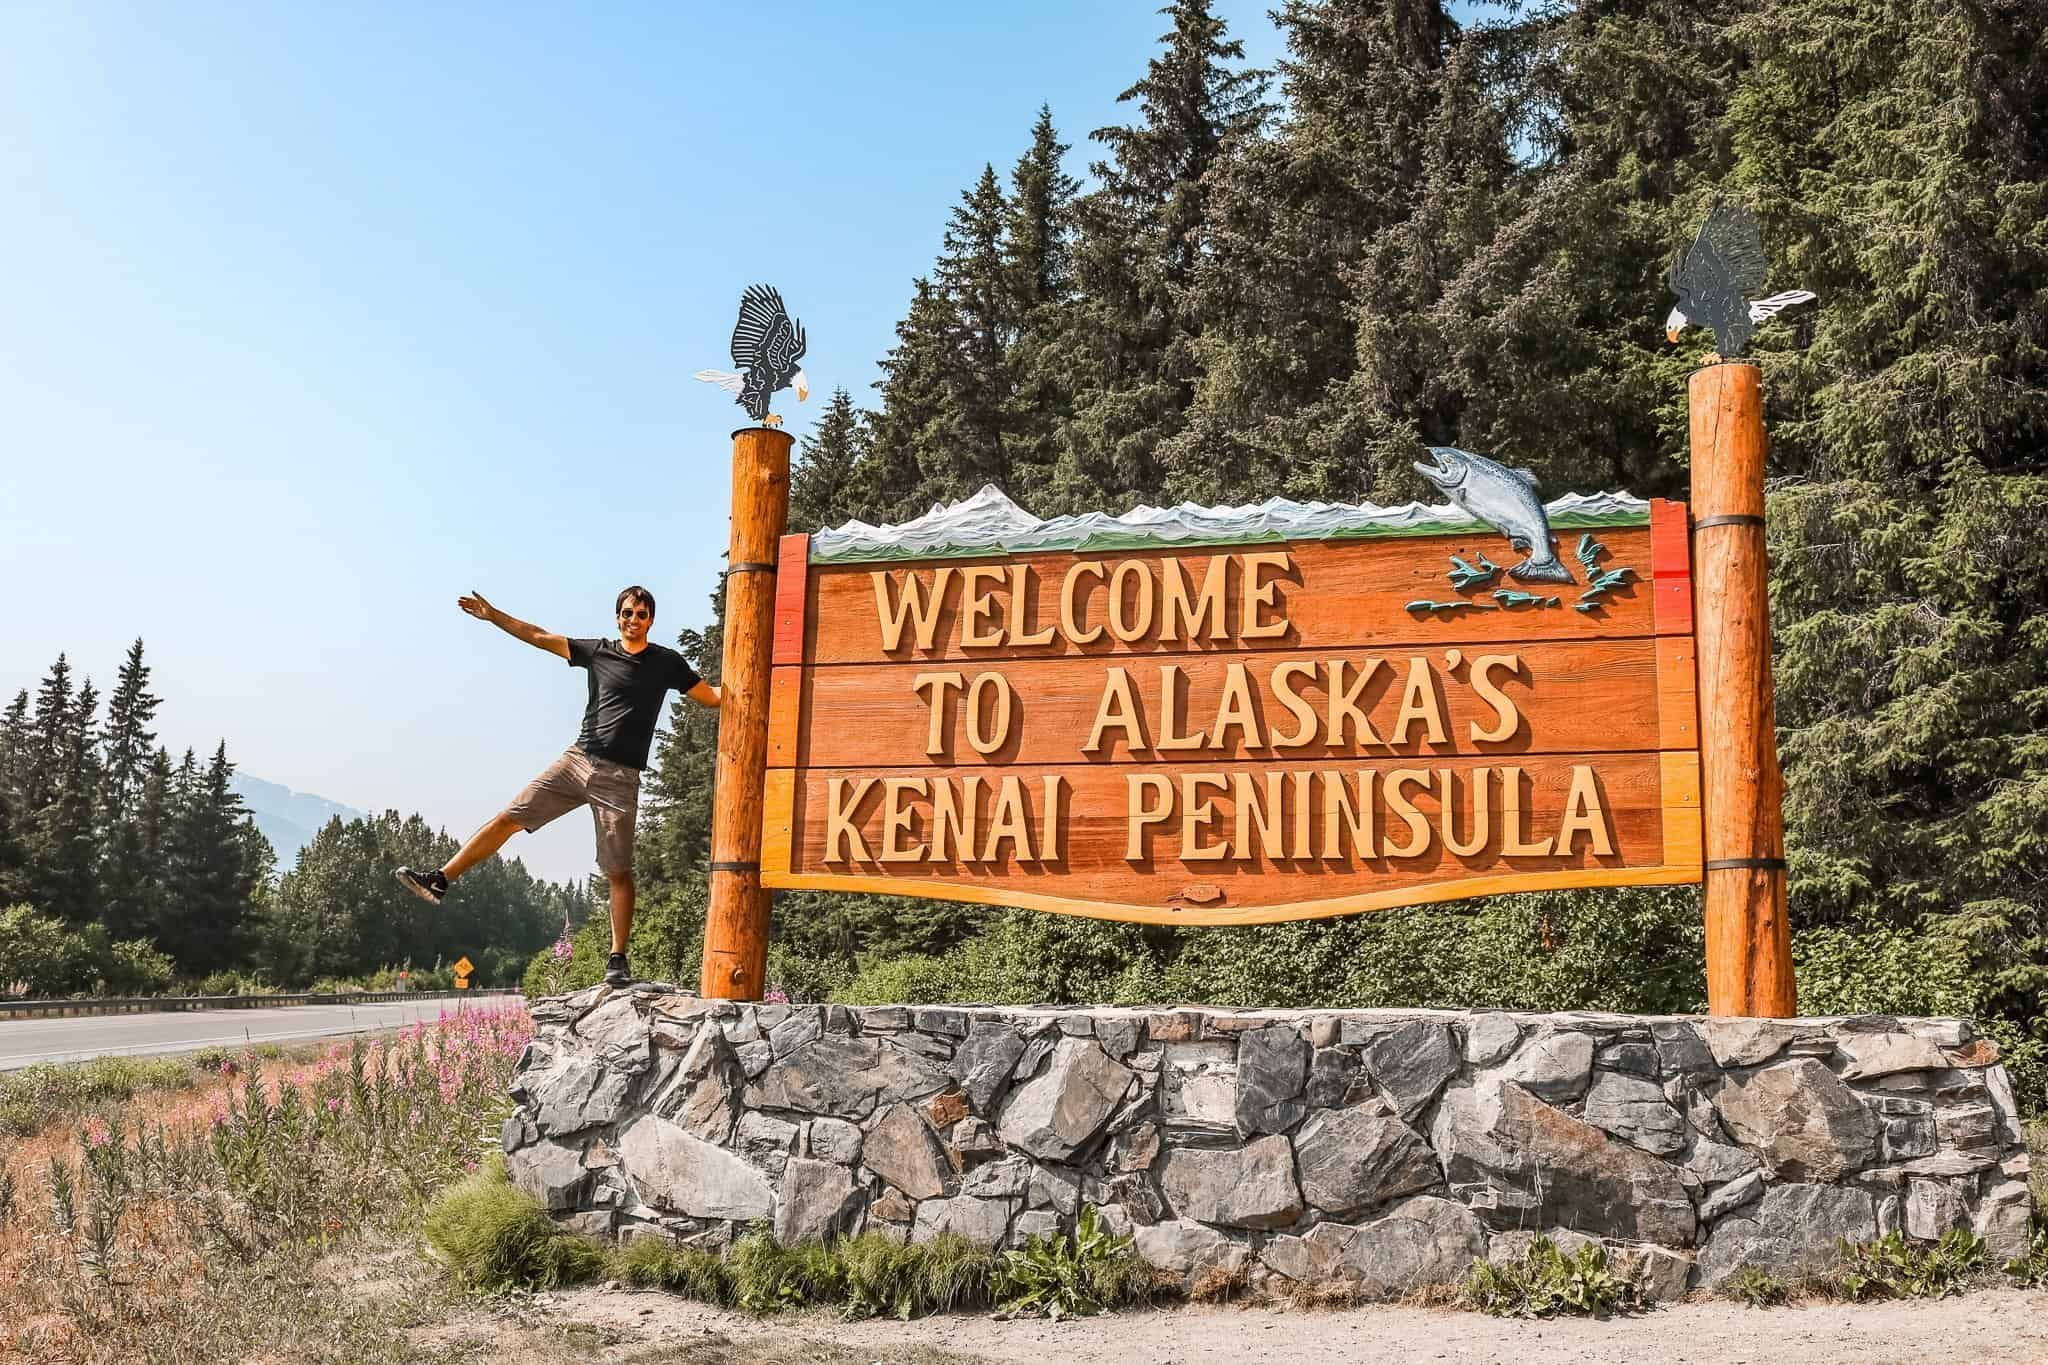 Welcome to Alaska's Kenai Peninsula - The Next Trip